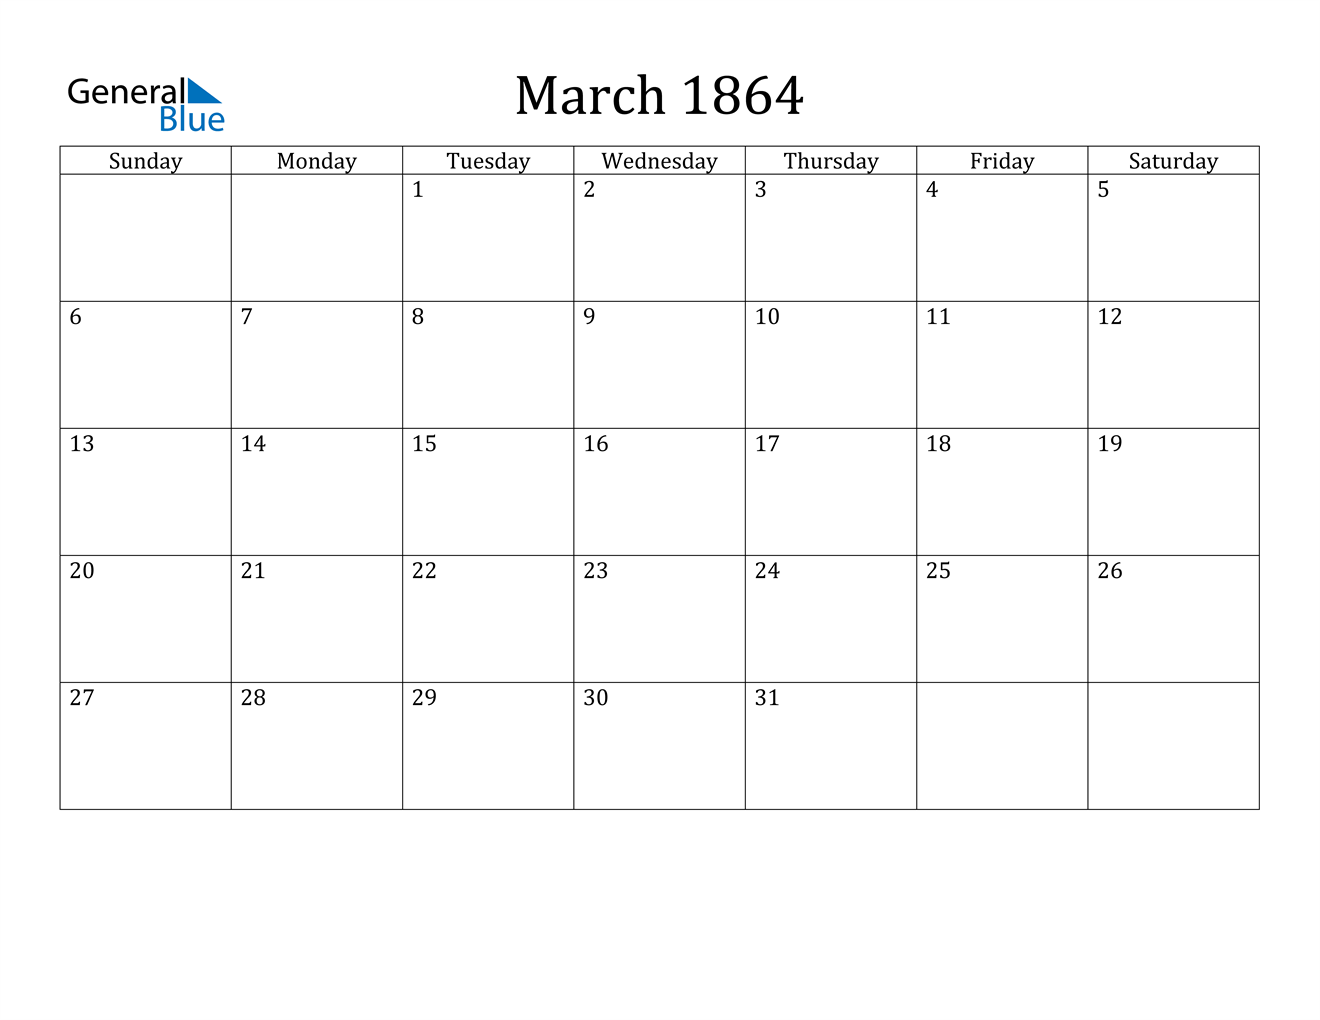 Image of March 1864 Calendar